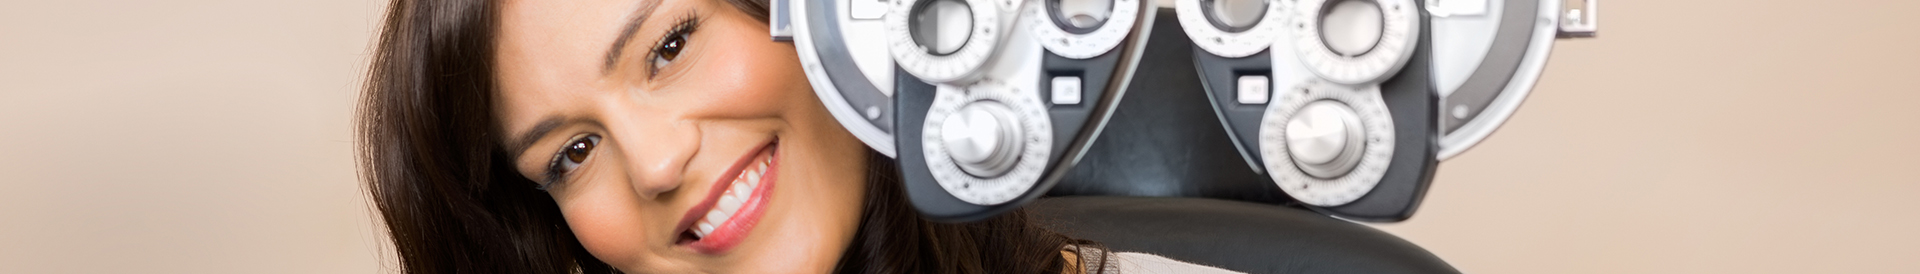 Eye Doctor in Pomona